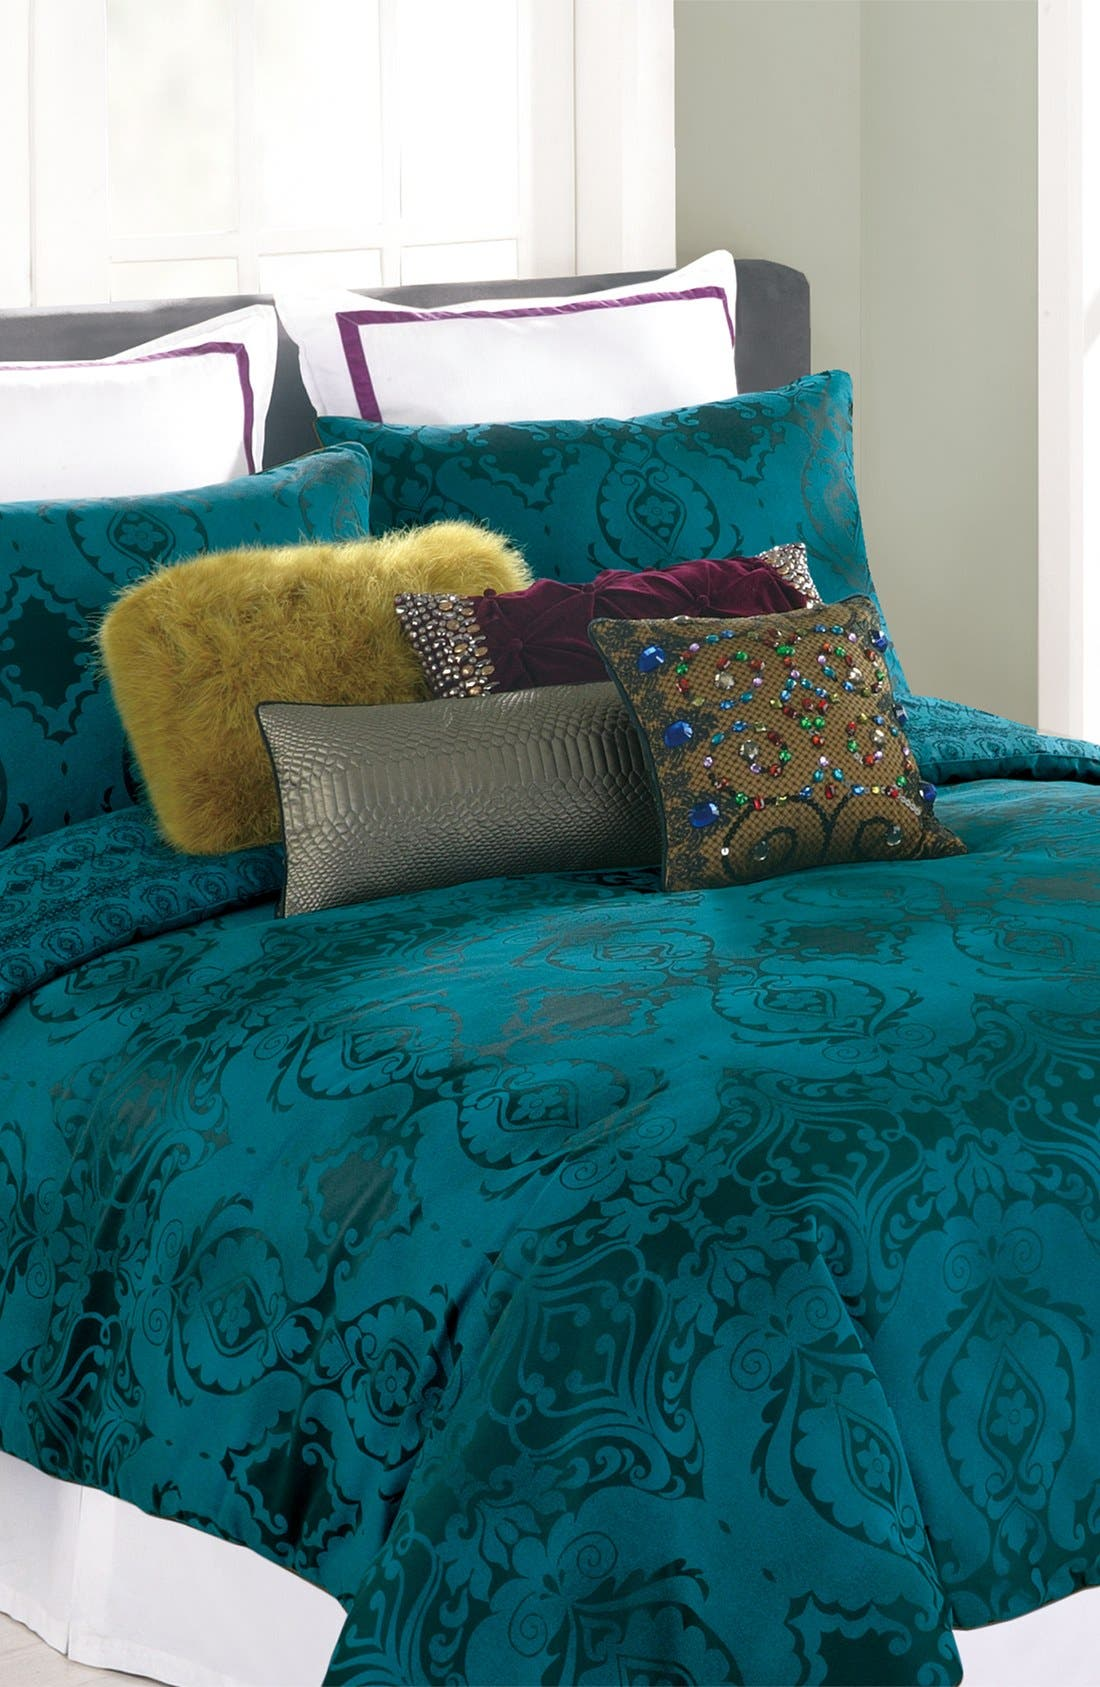 Alternate Image 1 Selected - Nanette Lepore Villa 'Baroque' Comforter & Shams